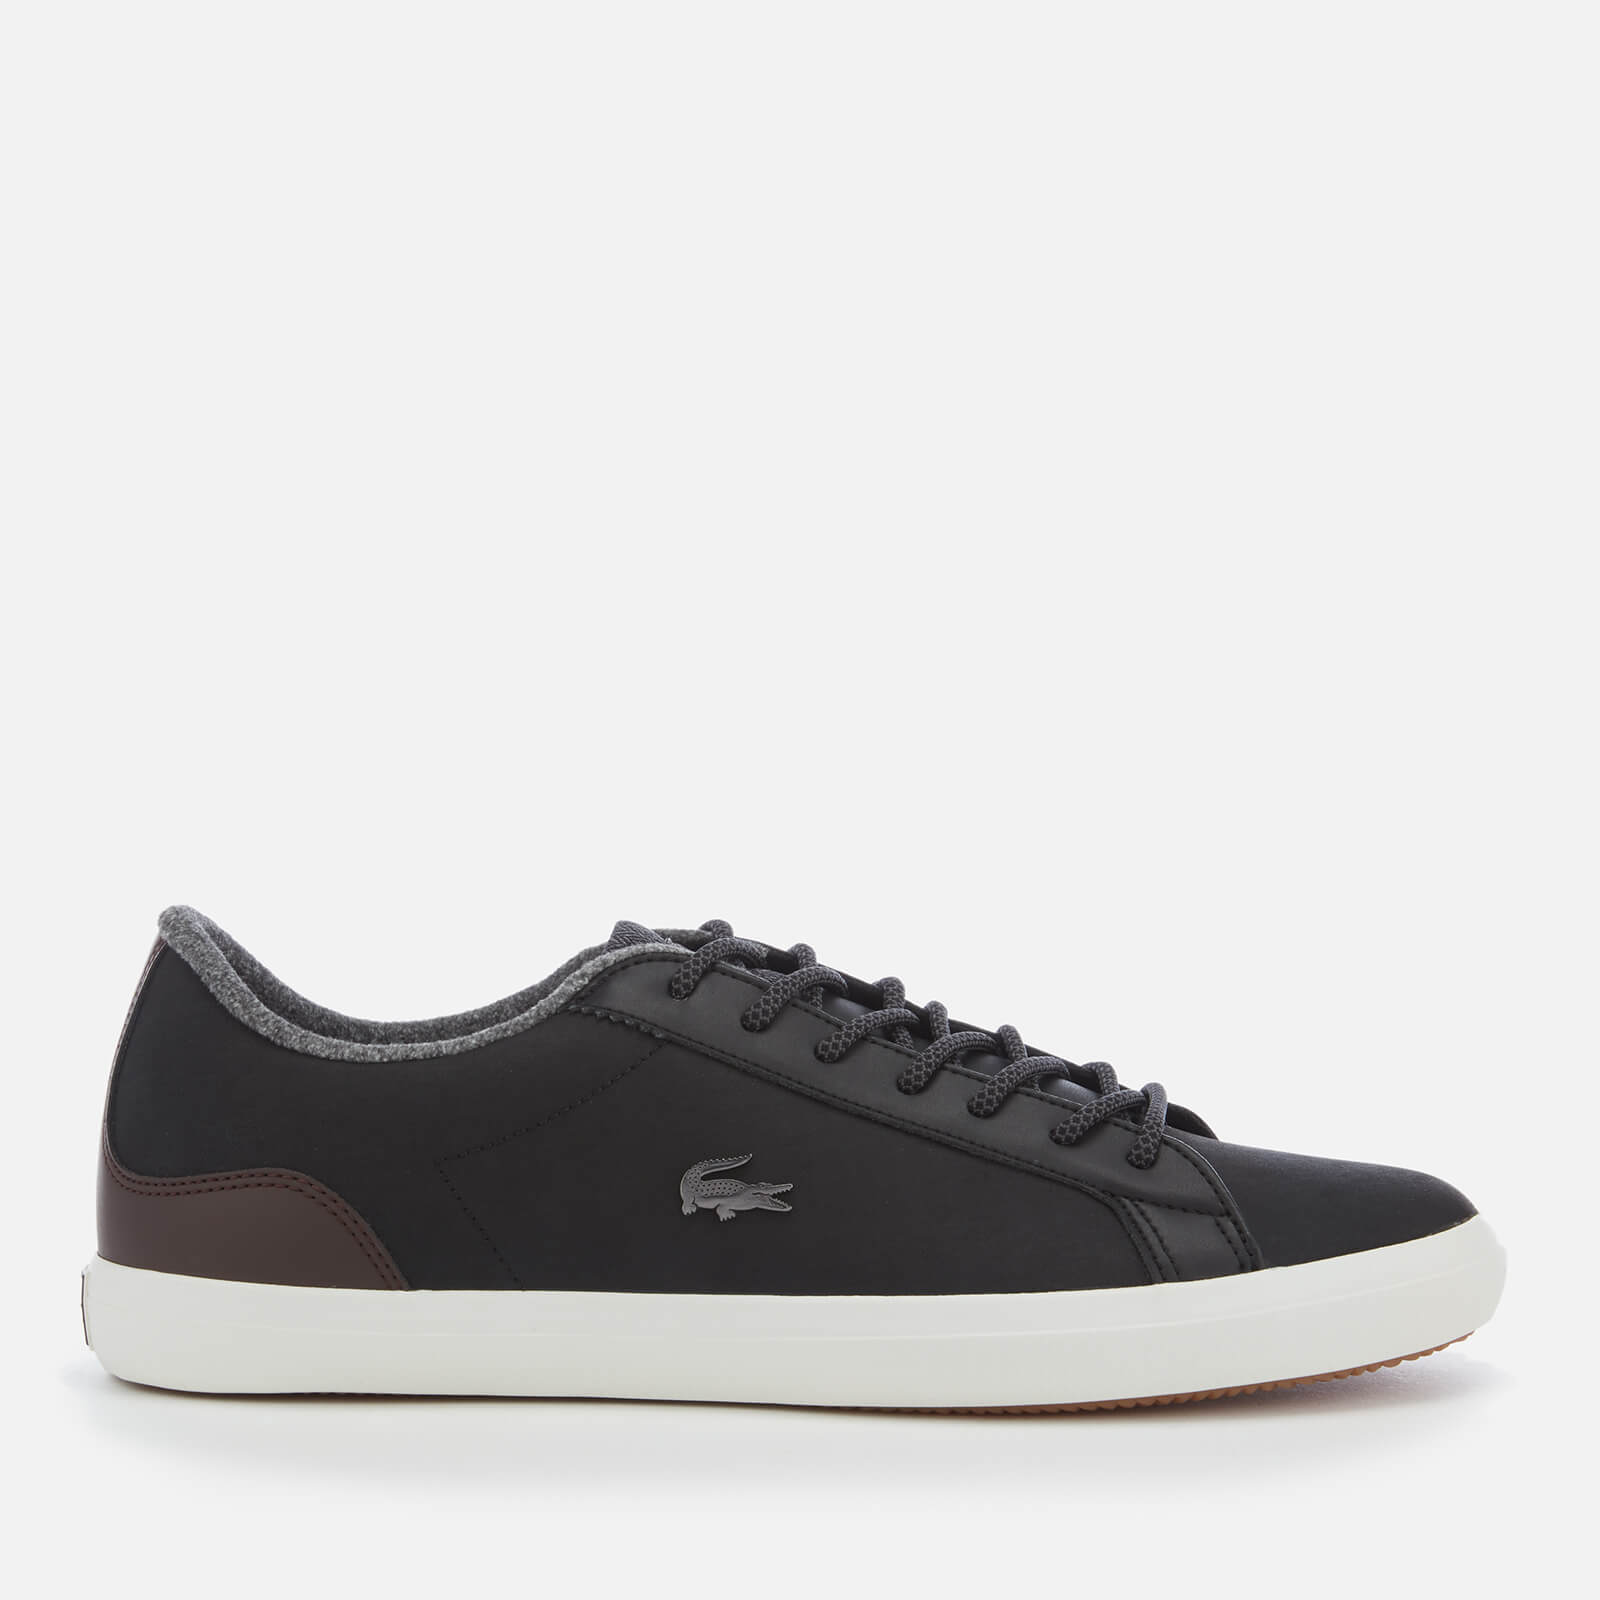 6263eaec6 Lacoste Men s Lerond 318 2 Water Resistant Leather Trainers - Black Brown -  Free UK Delivery over £50